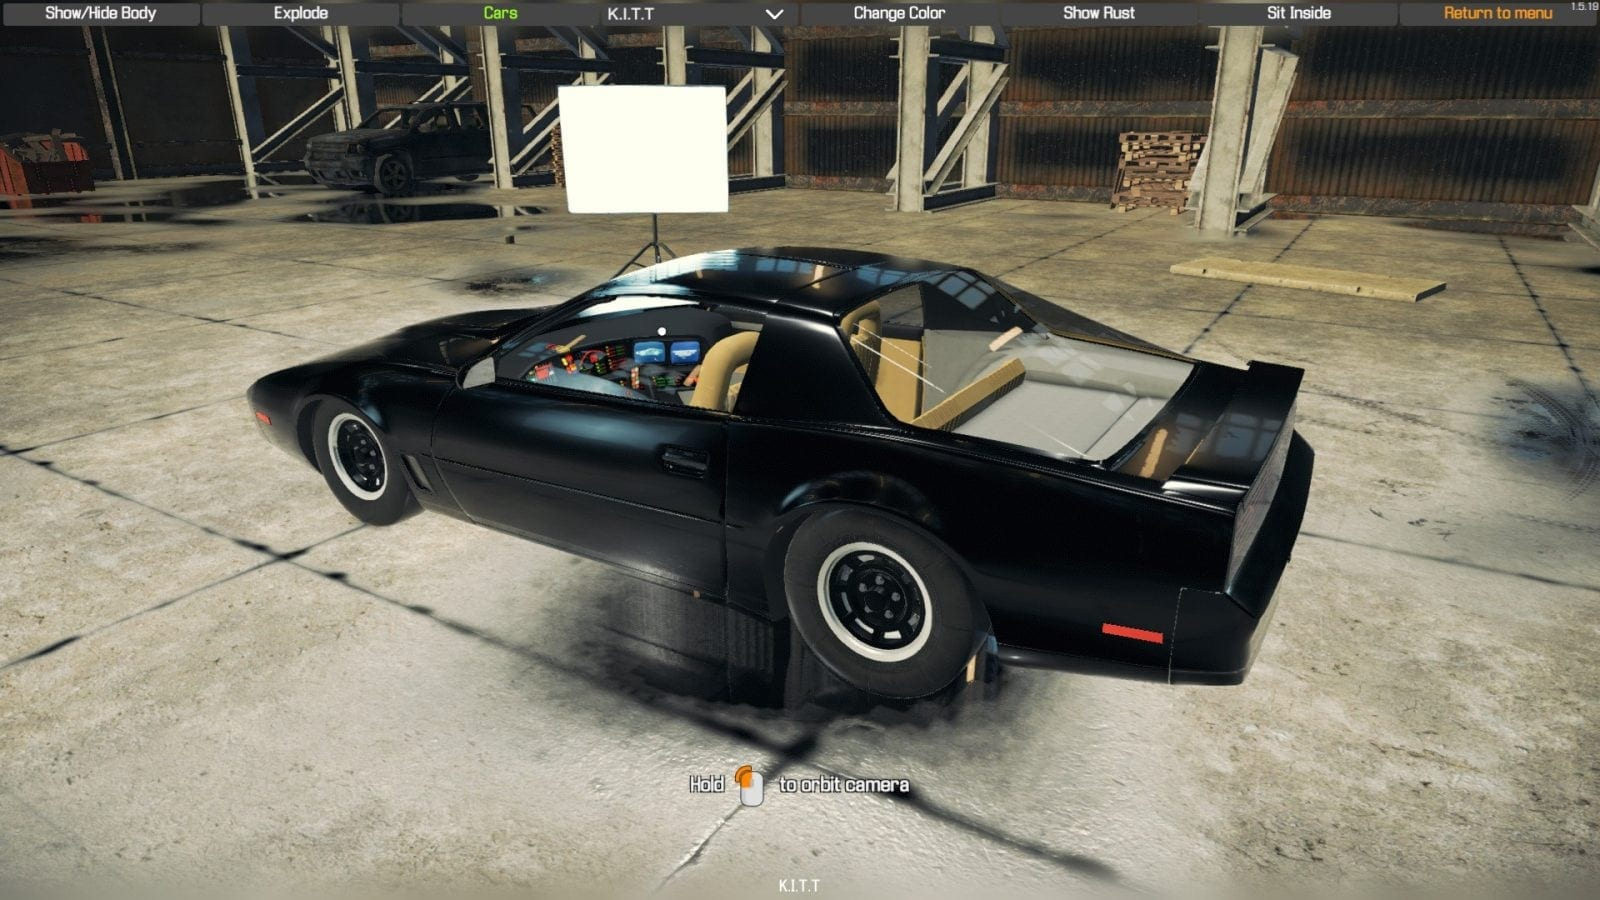 KITT Knight Industries Two Thousand Mod for Car Mechanic Simulator 2018